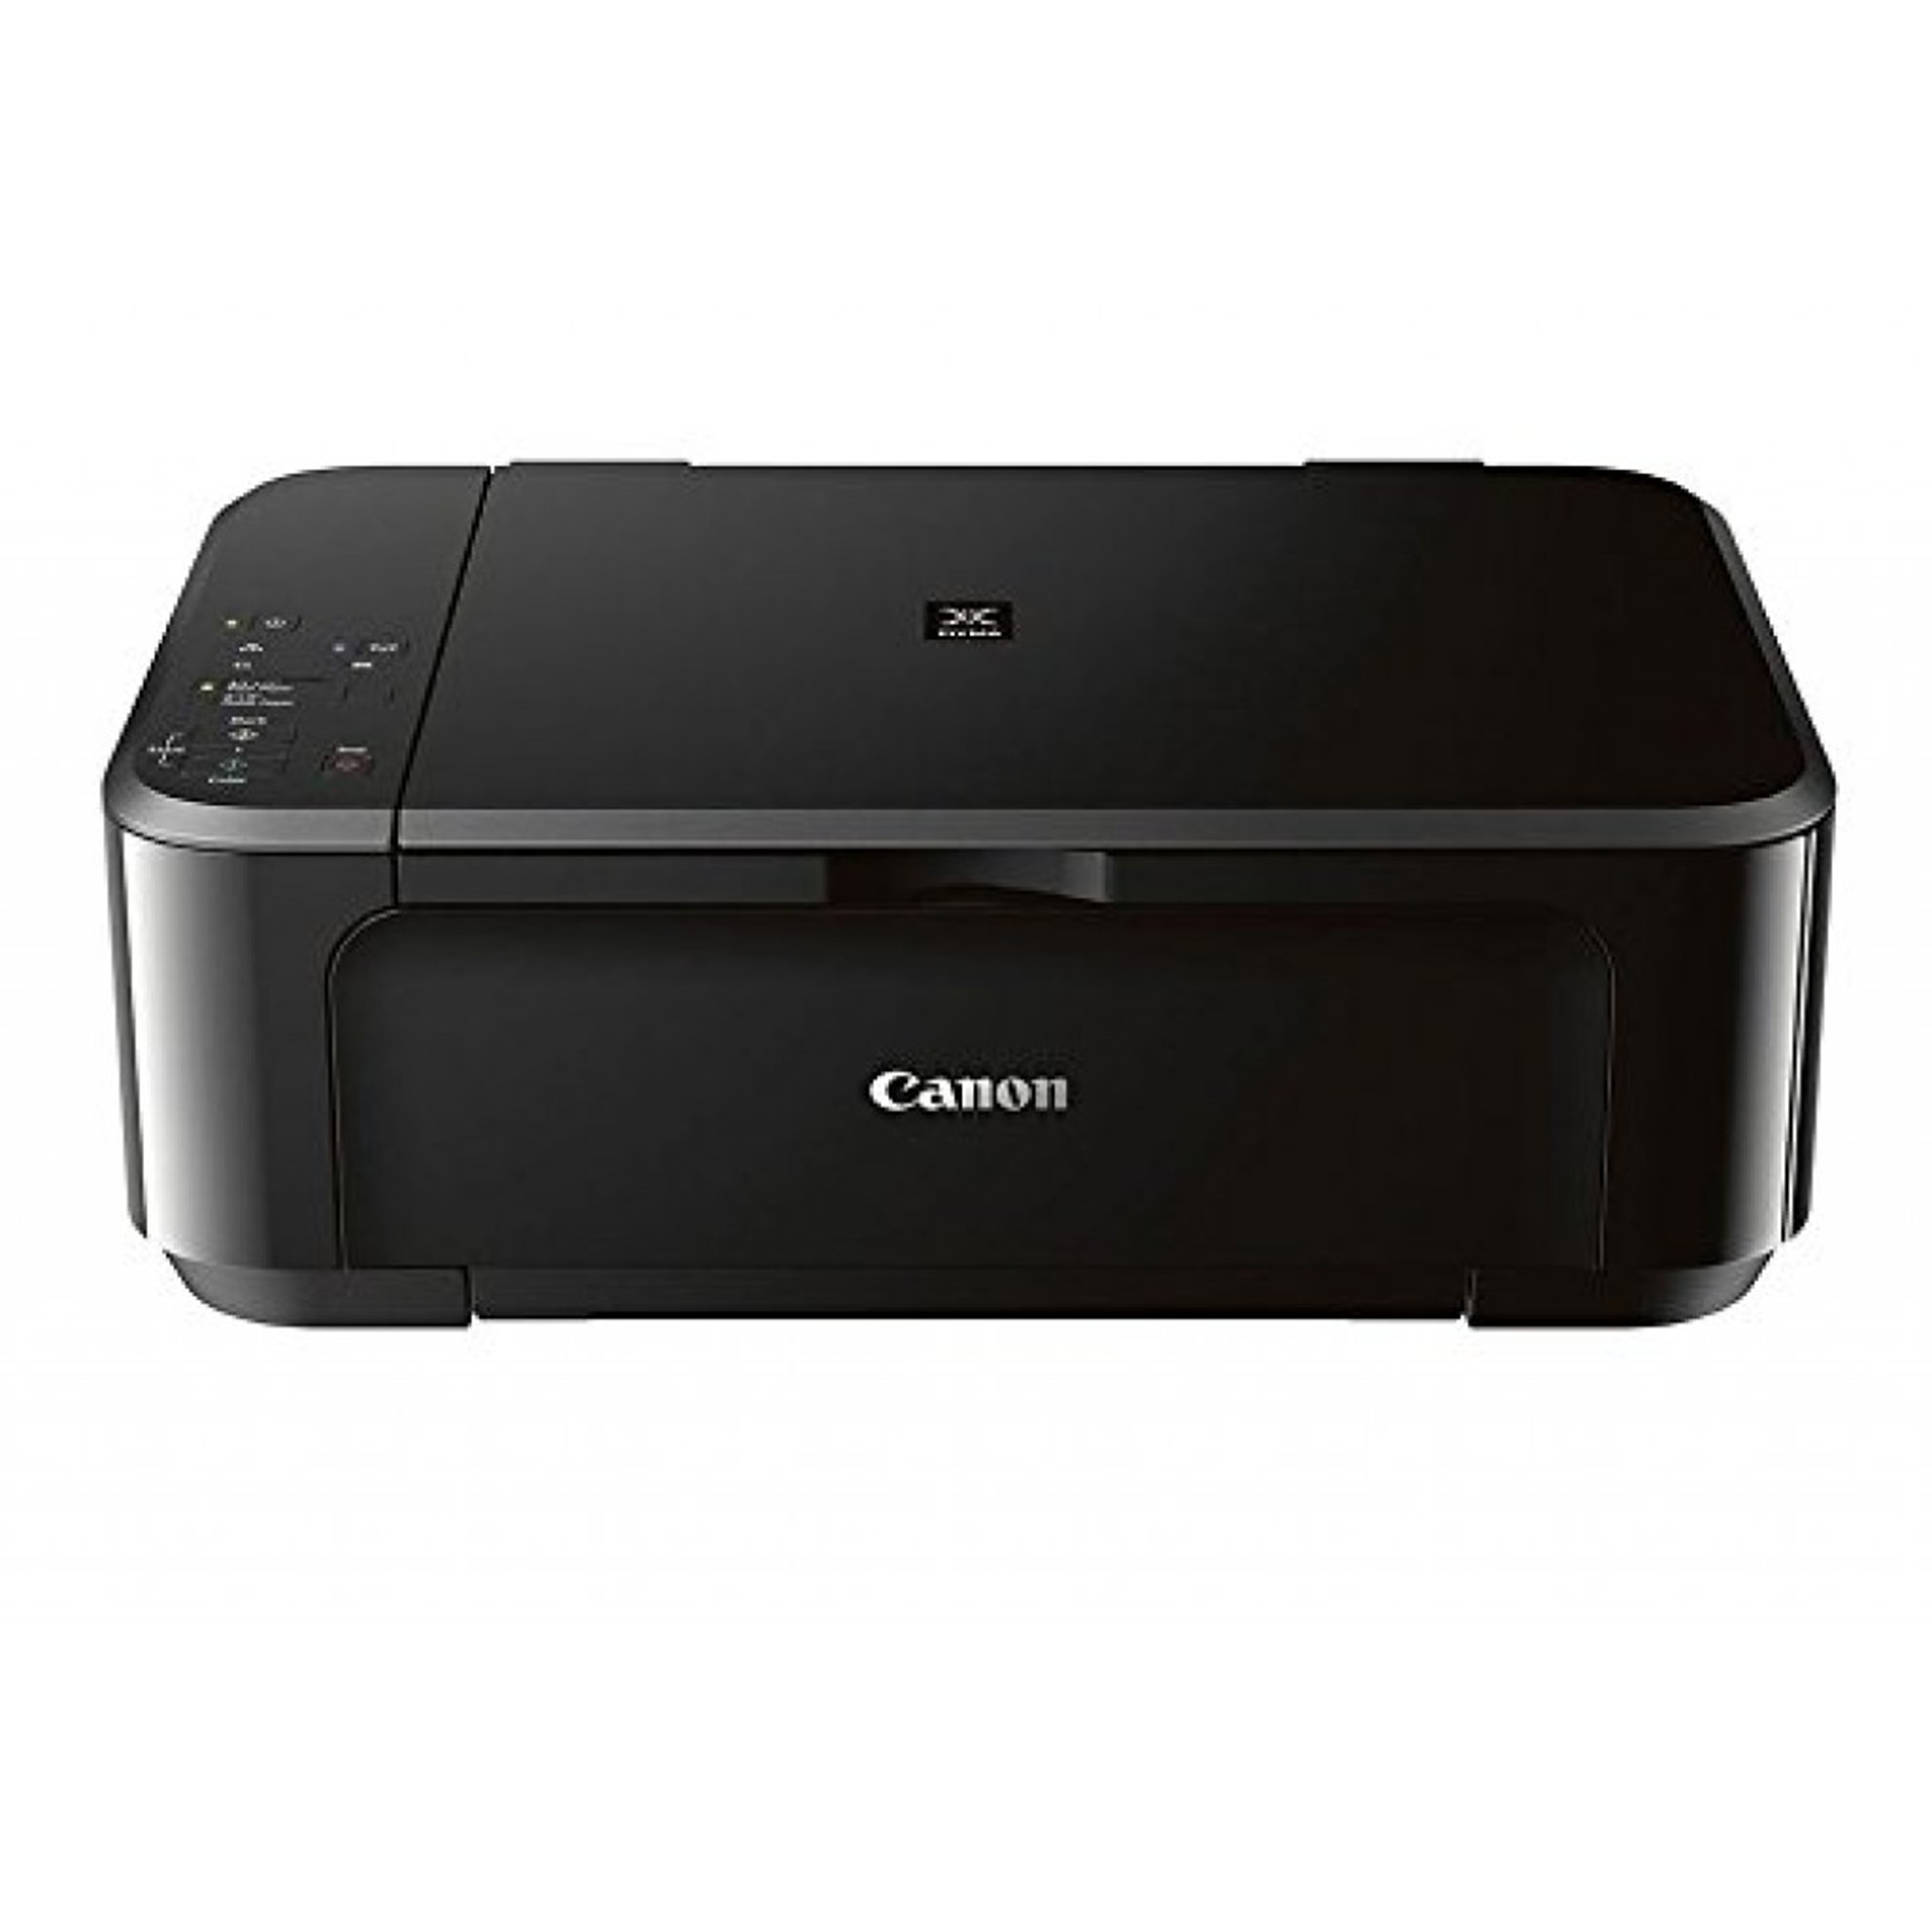 Canon PIXMA MG3640 Printer + A4 COPY PAPER FREE GIFT